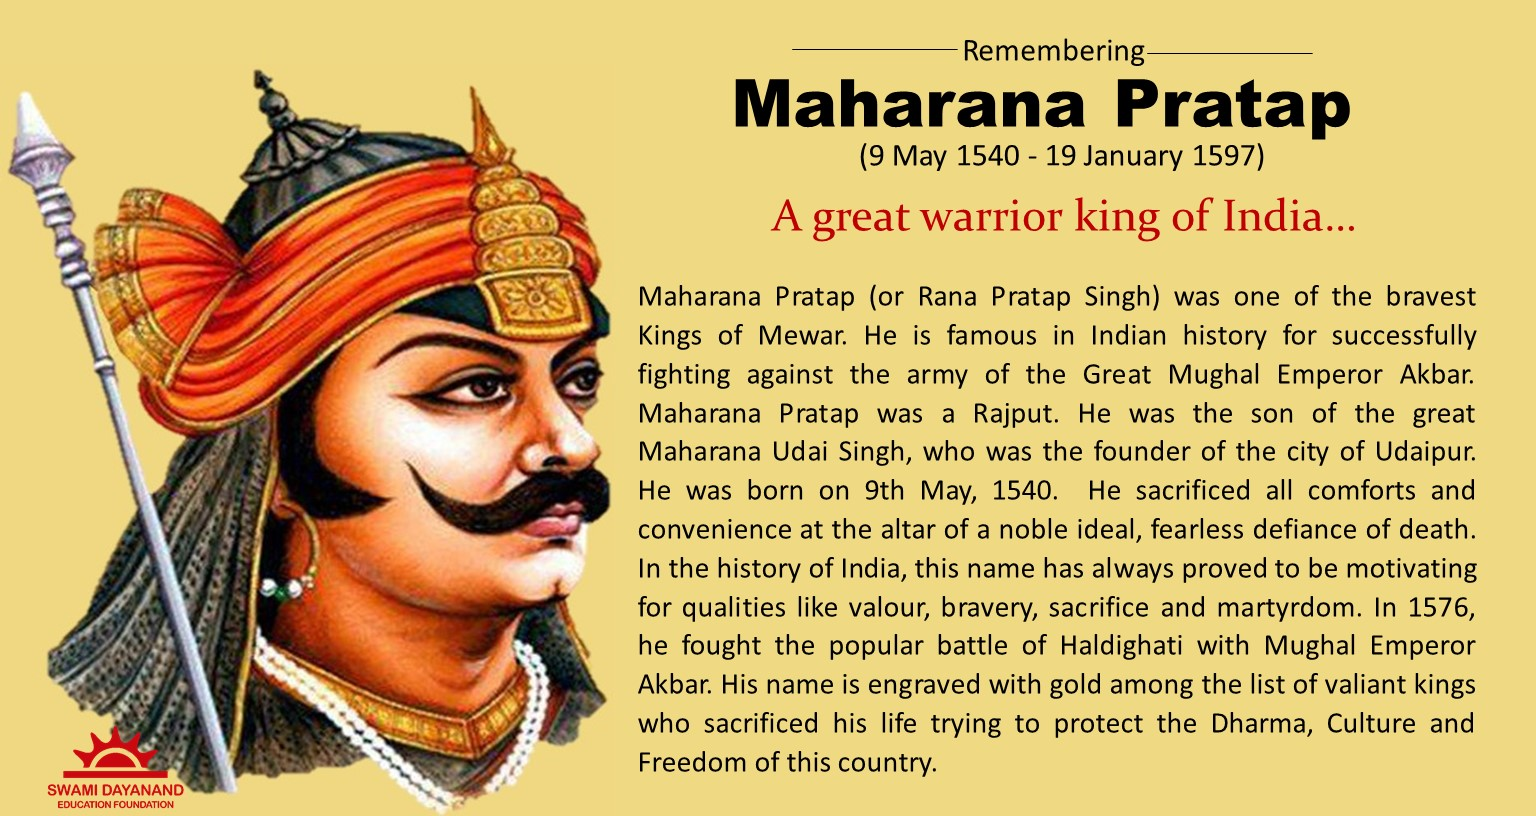 MAHARANA PRATAP  (9th May 1540 - 19th Jan 1597)